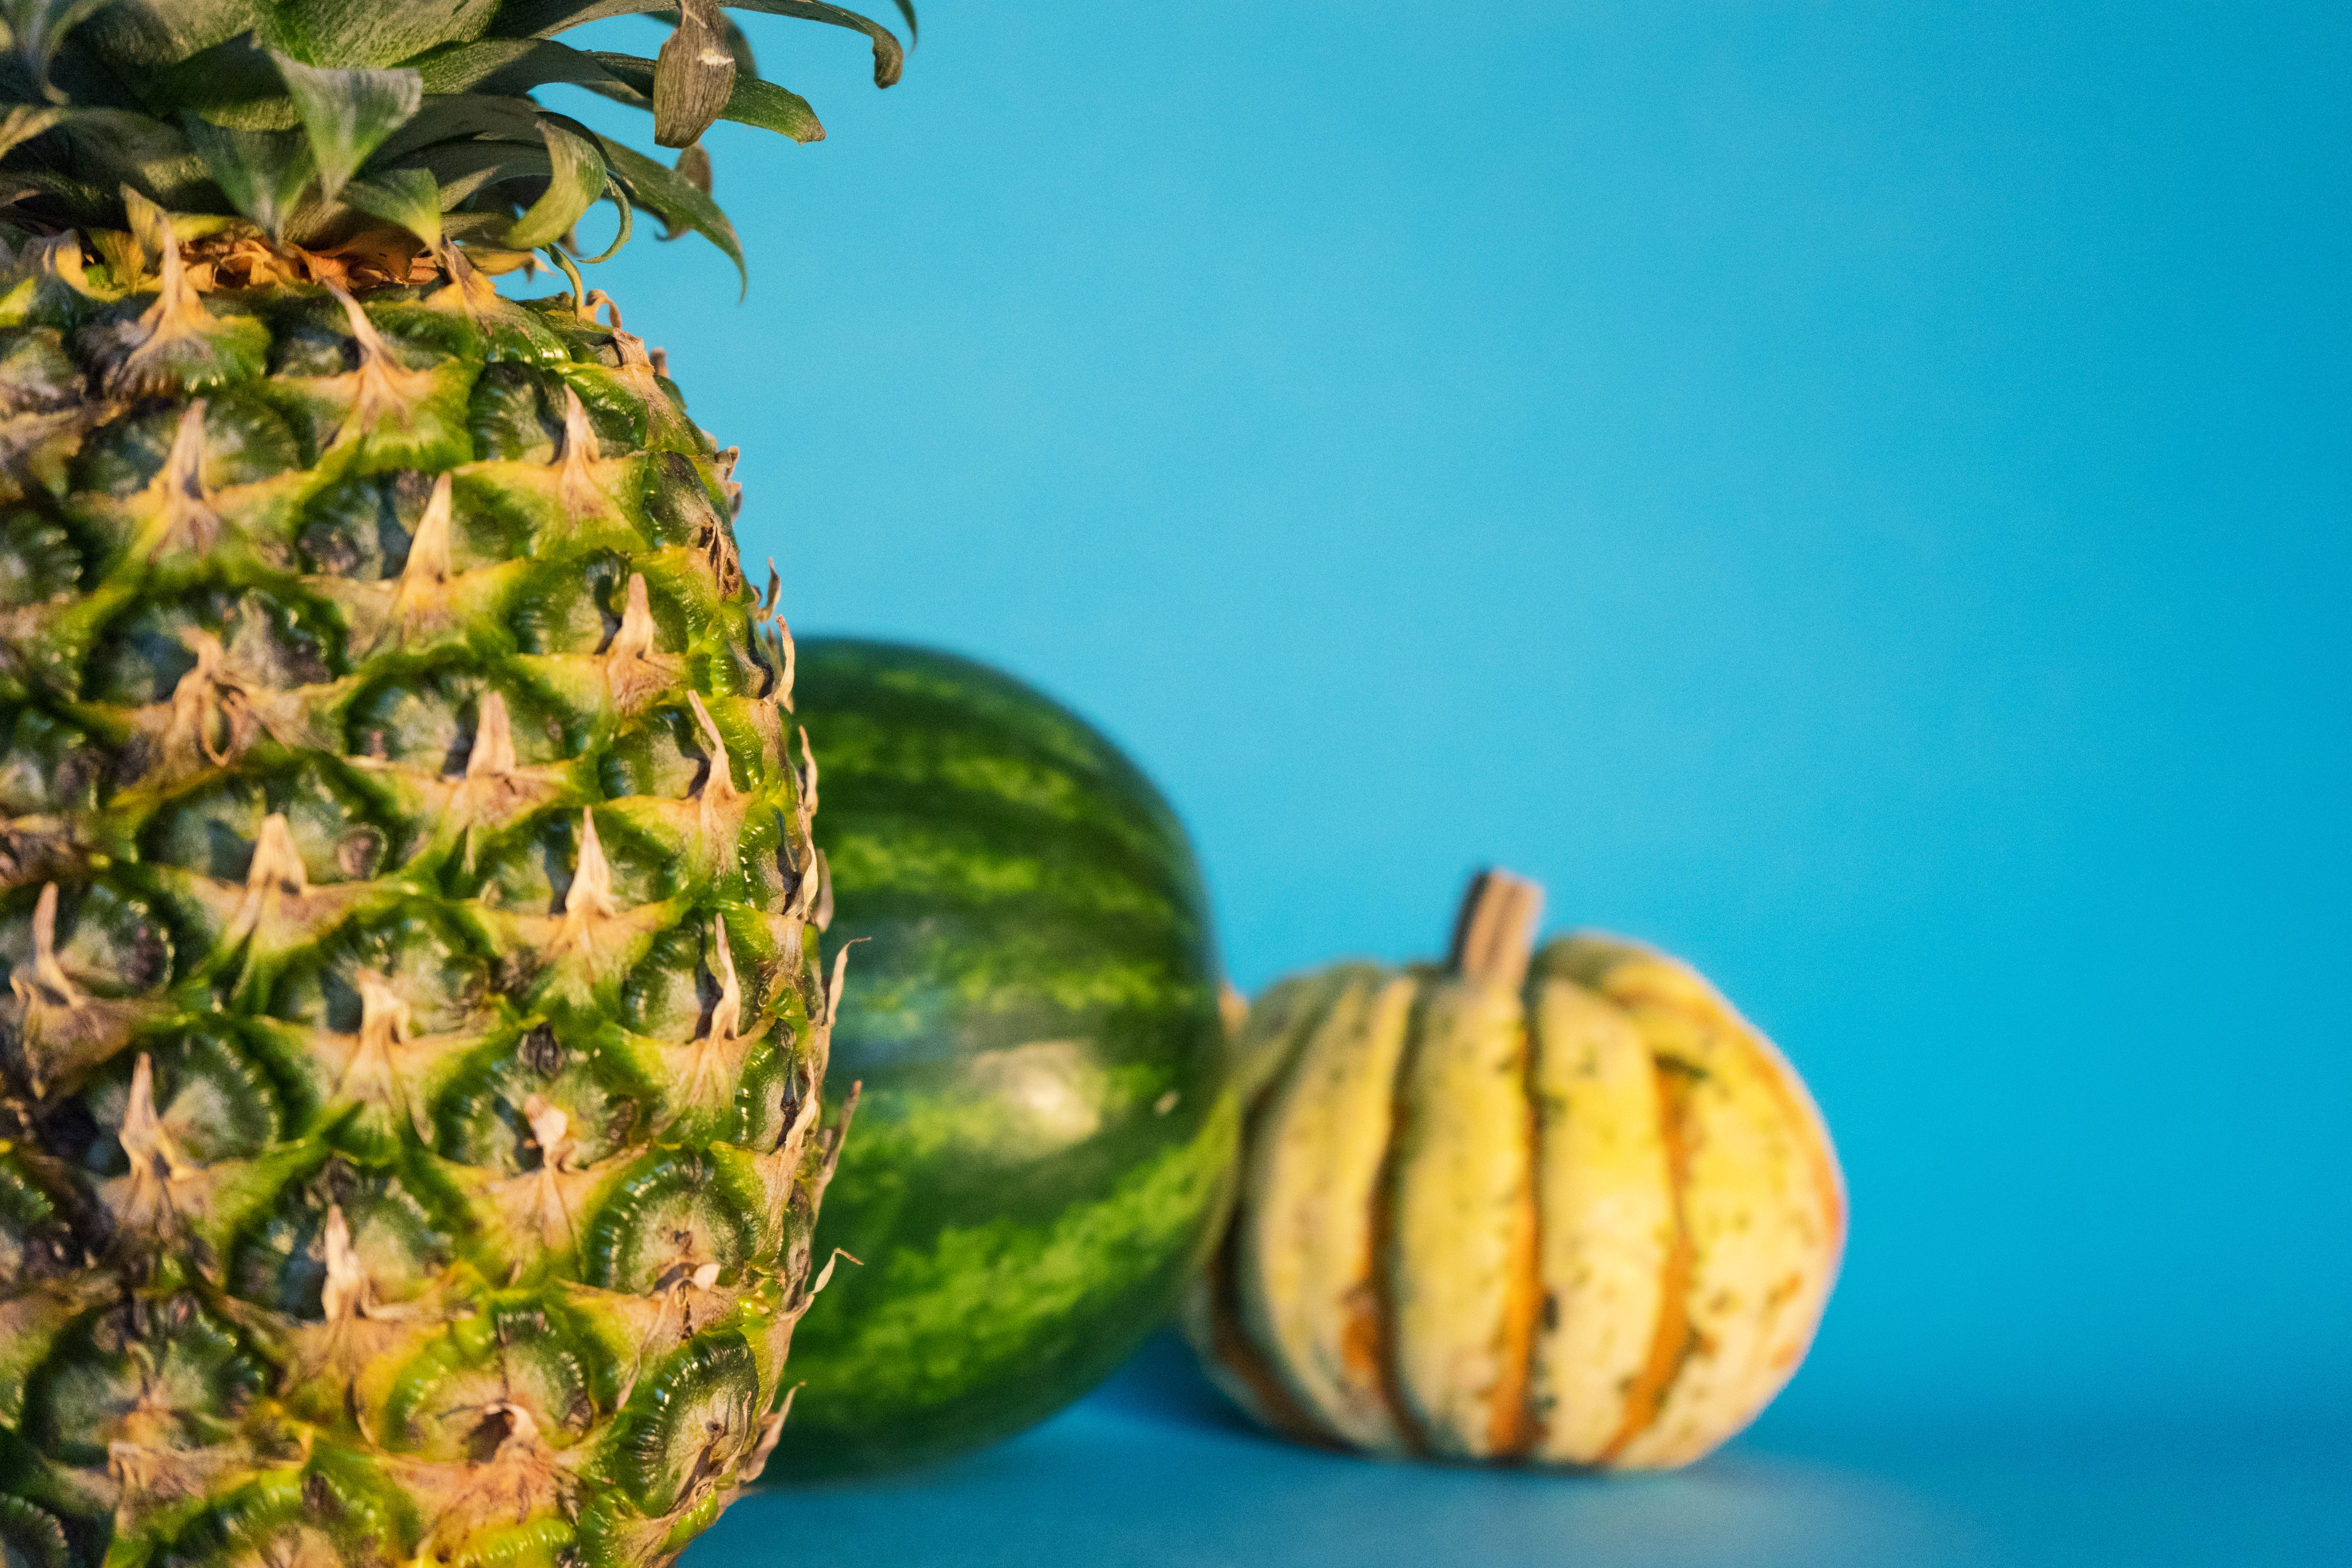 Pineapple, watermelon, and fall gourd on a blue background